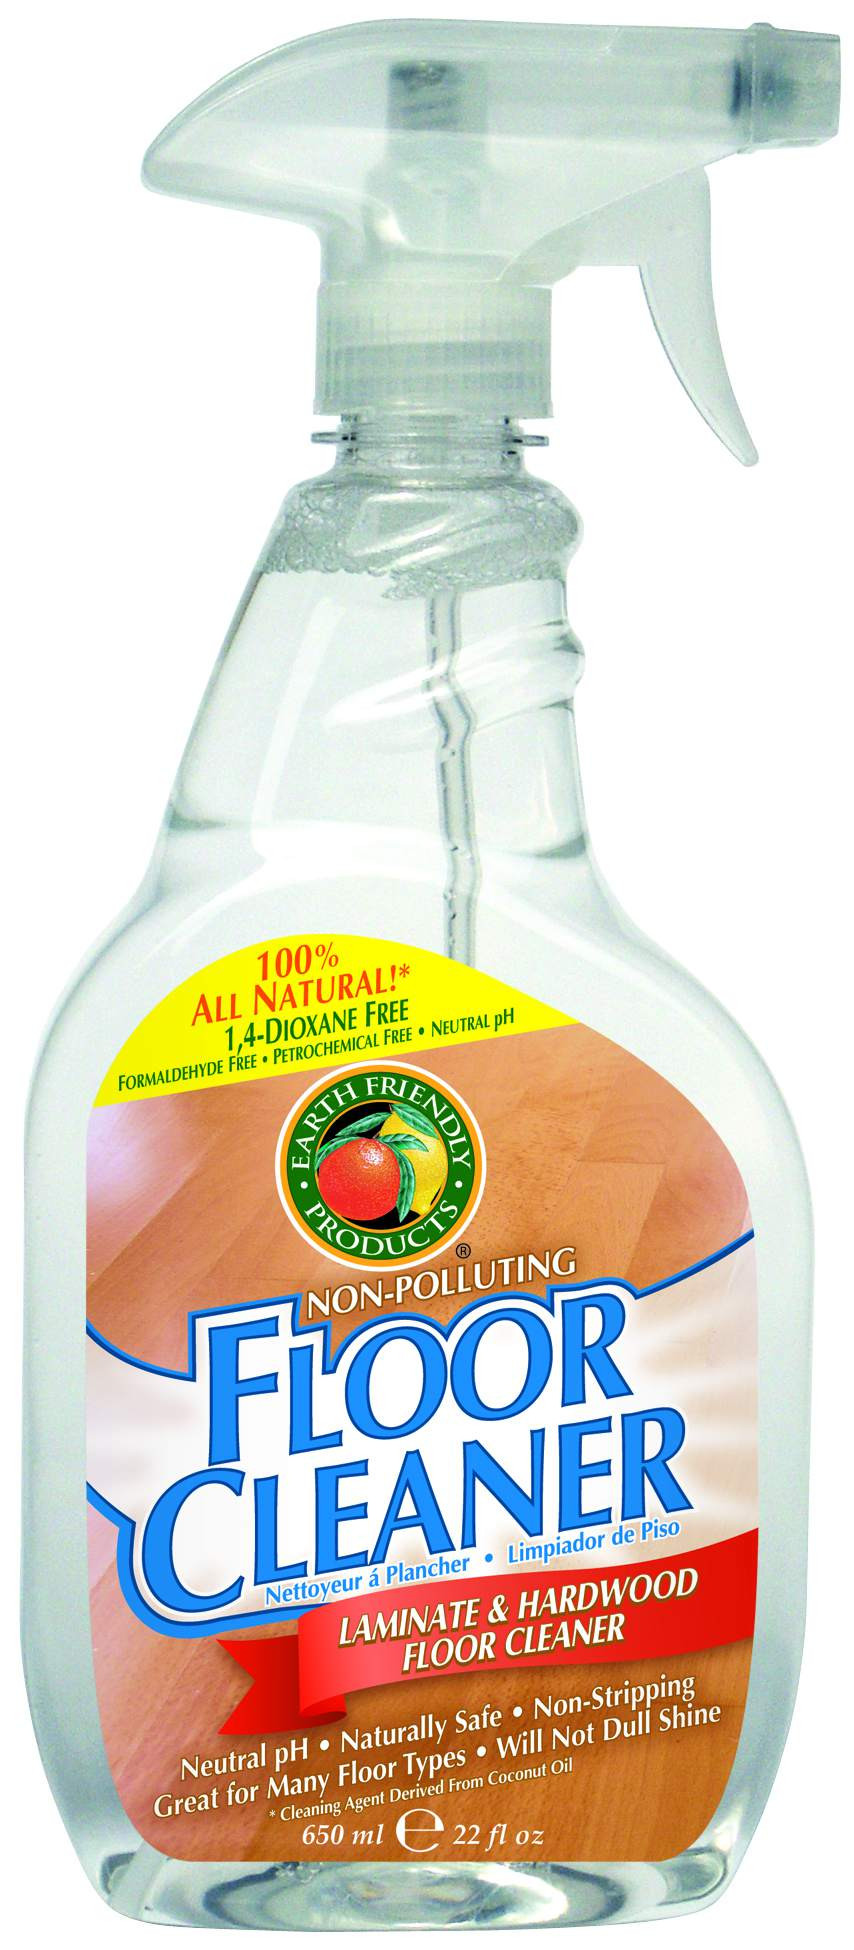 hardwood floor cleaner that doesn t leave residue of adore your wood floors with these eco friendly cleaners pertaining to earth friendly products floor cleaner9725 floorcleaner aug10 56a45e363df78cf772820af4